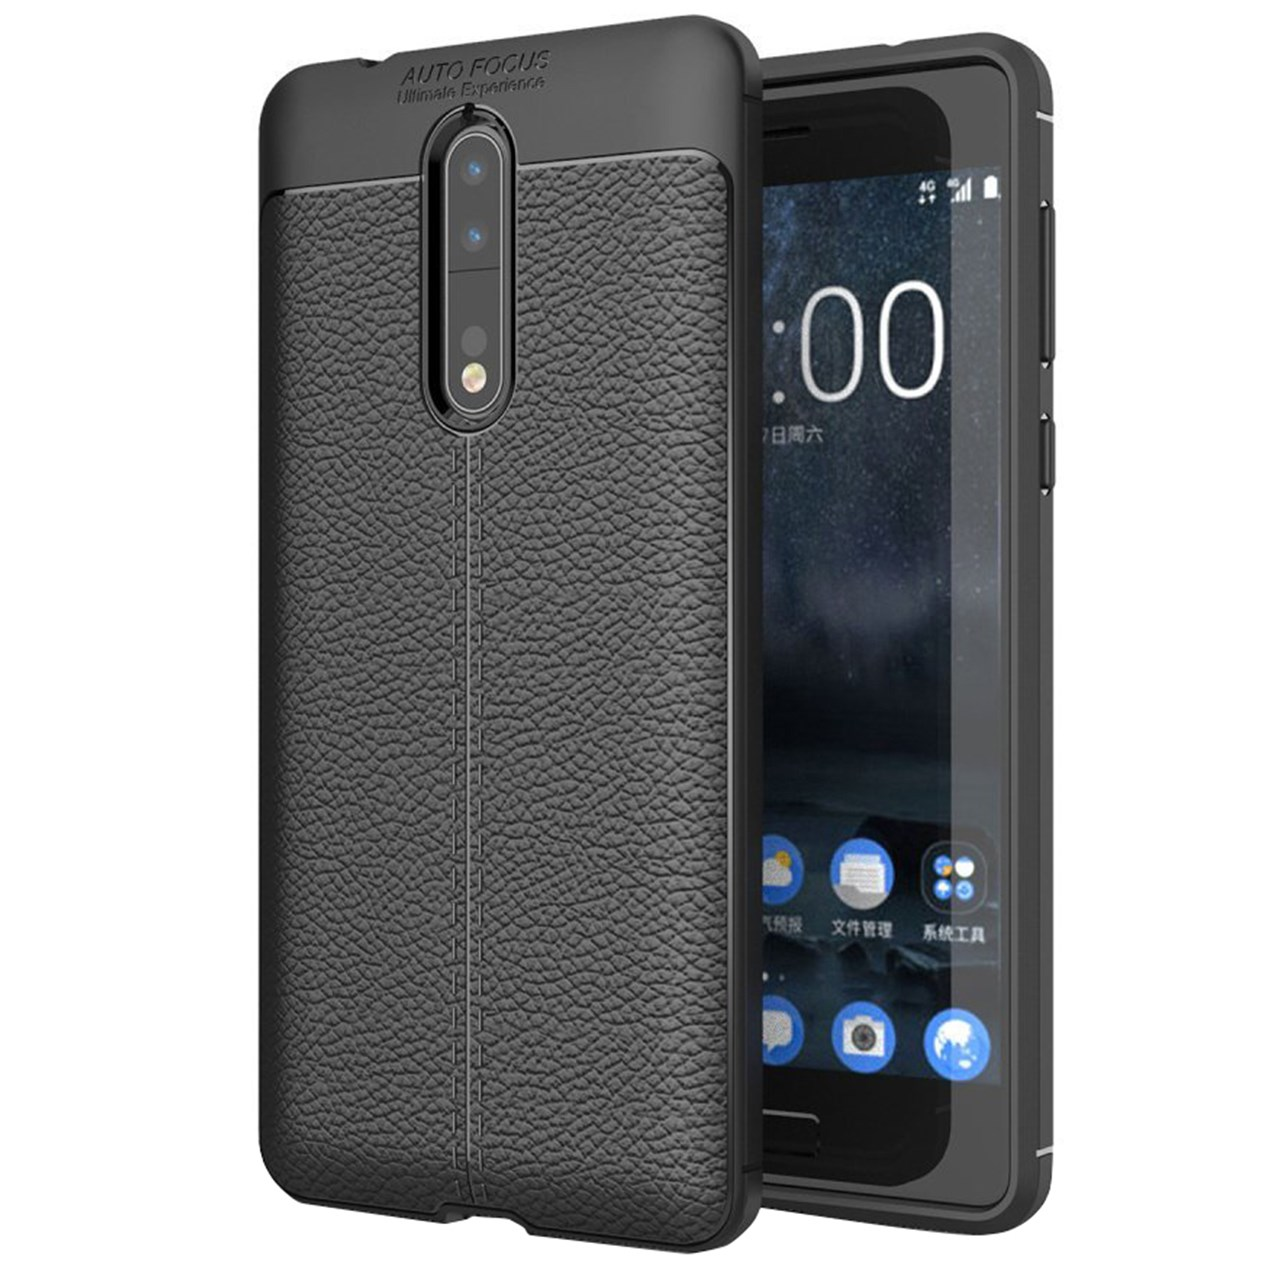 Auto Focus Series Ultimate Experience like Leather Cover For NOKIA 8